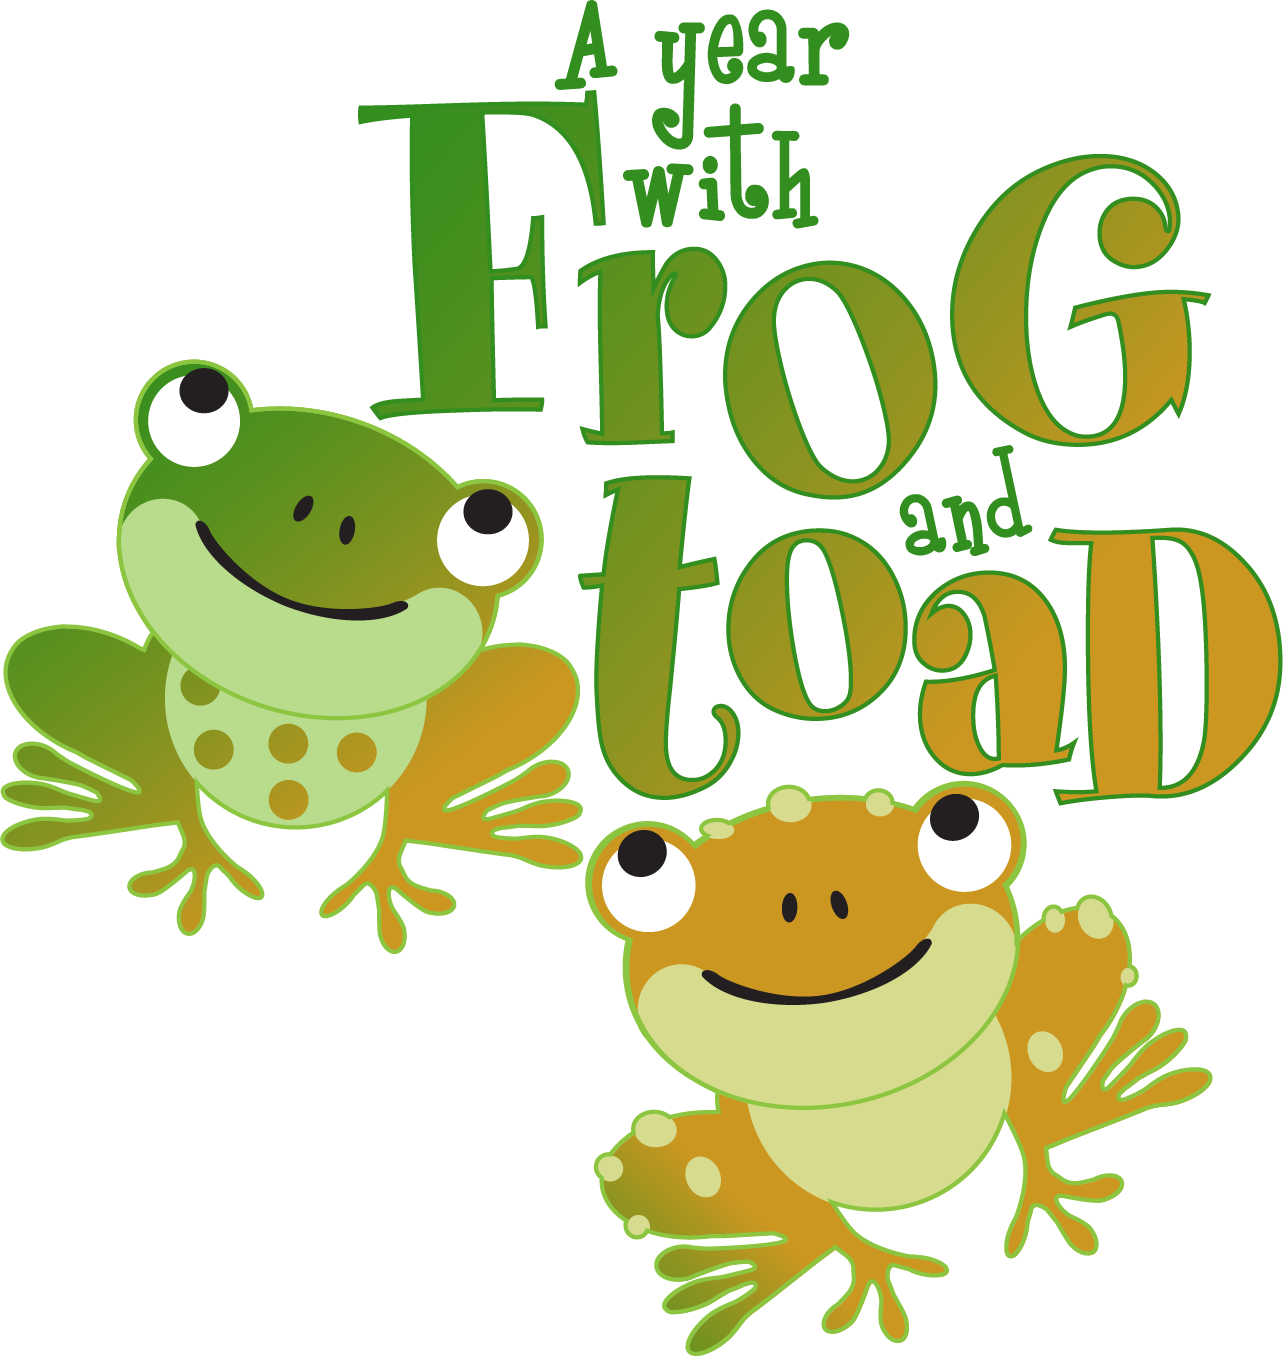 Frog and Toad FINAL